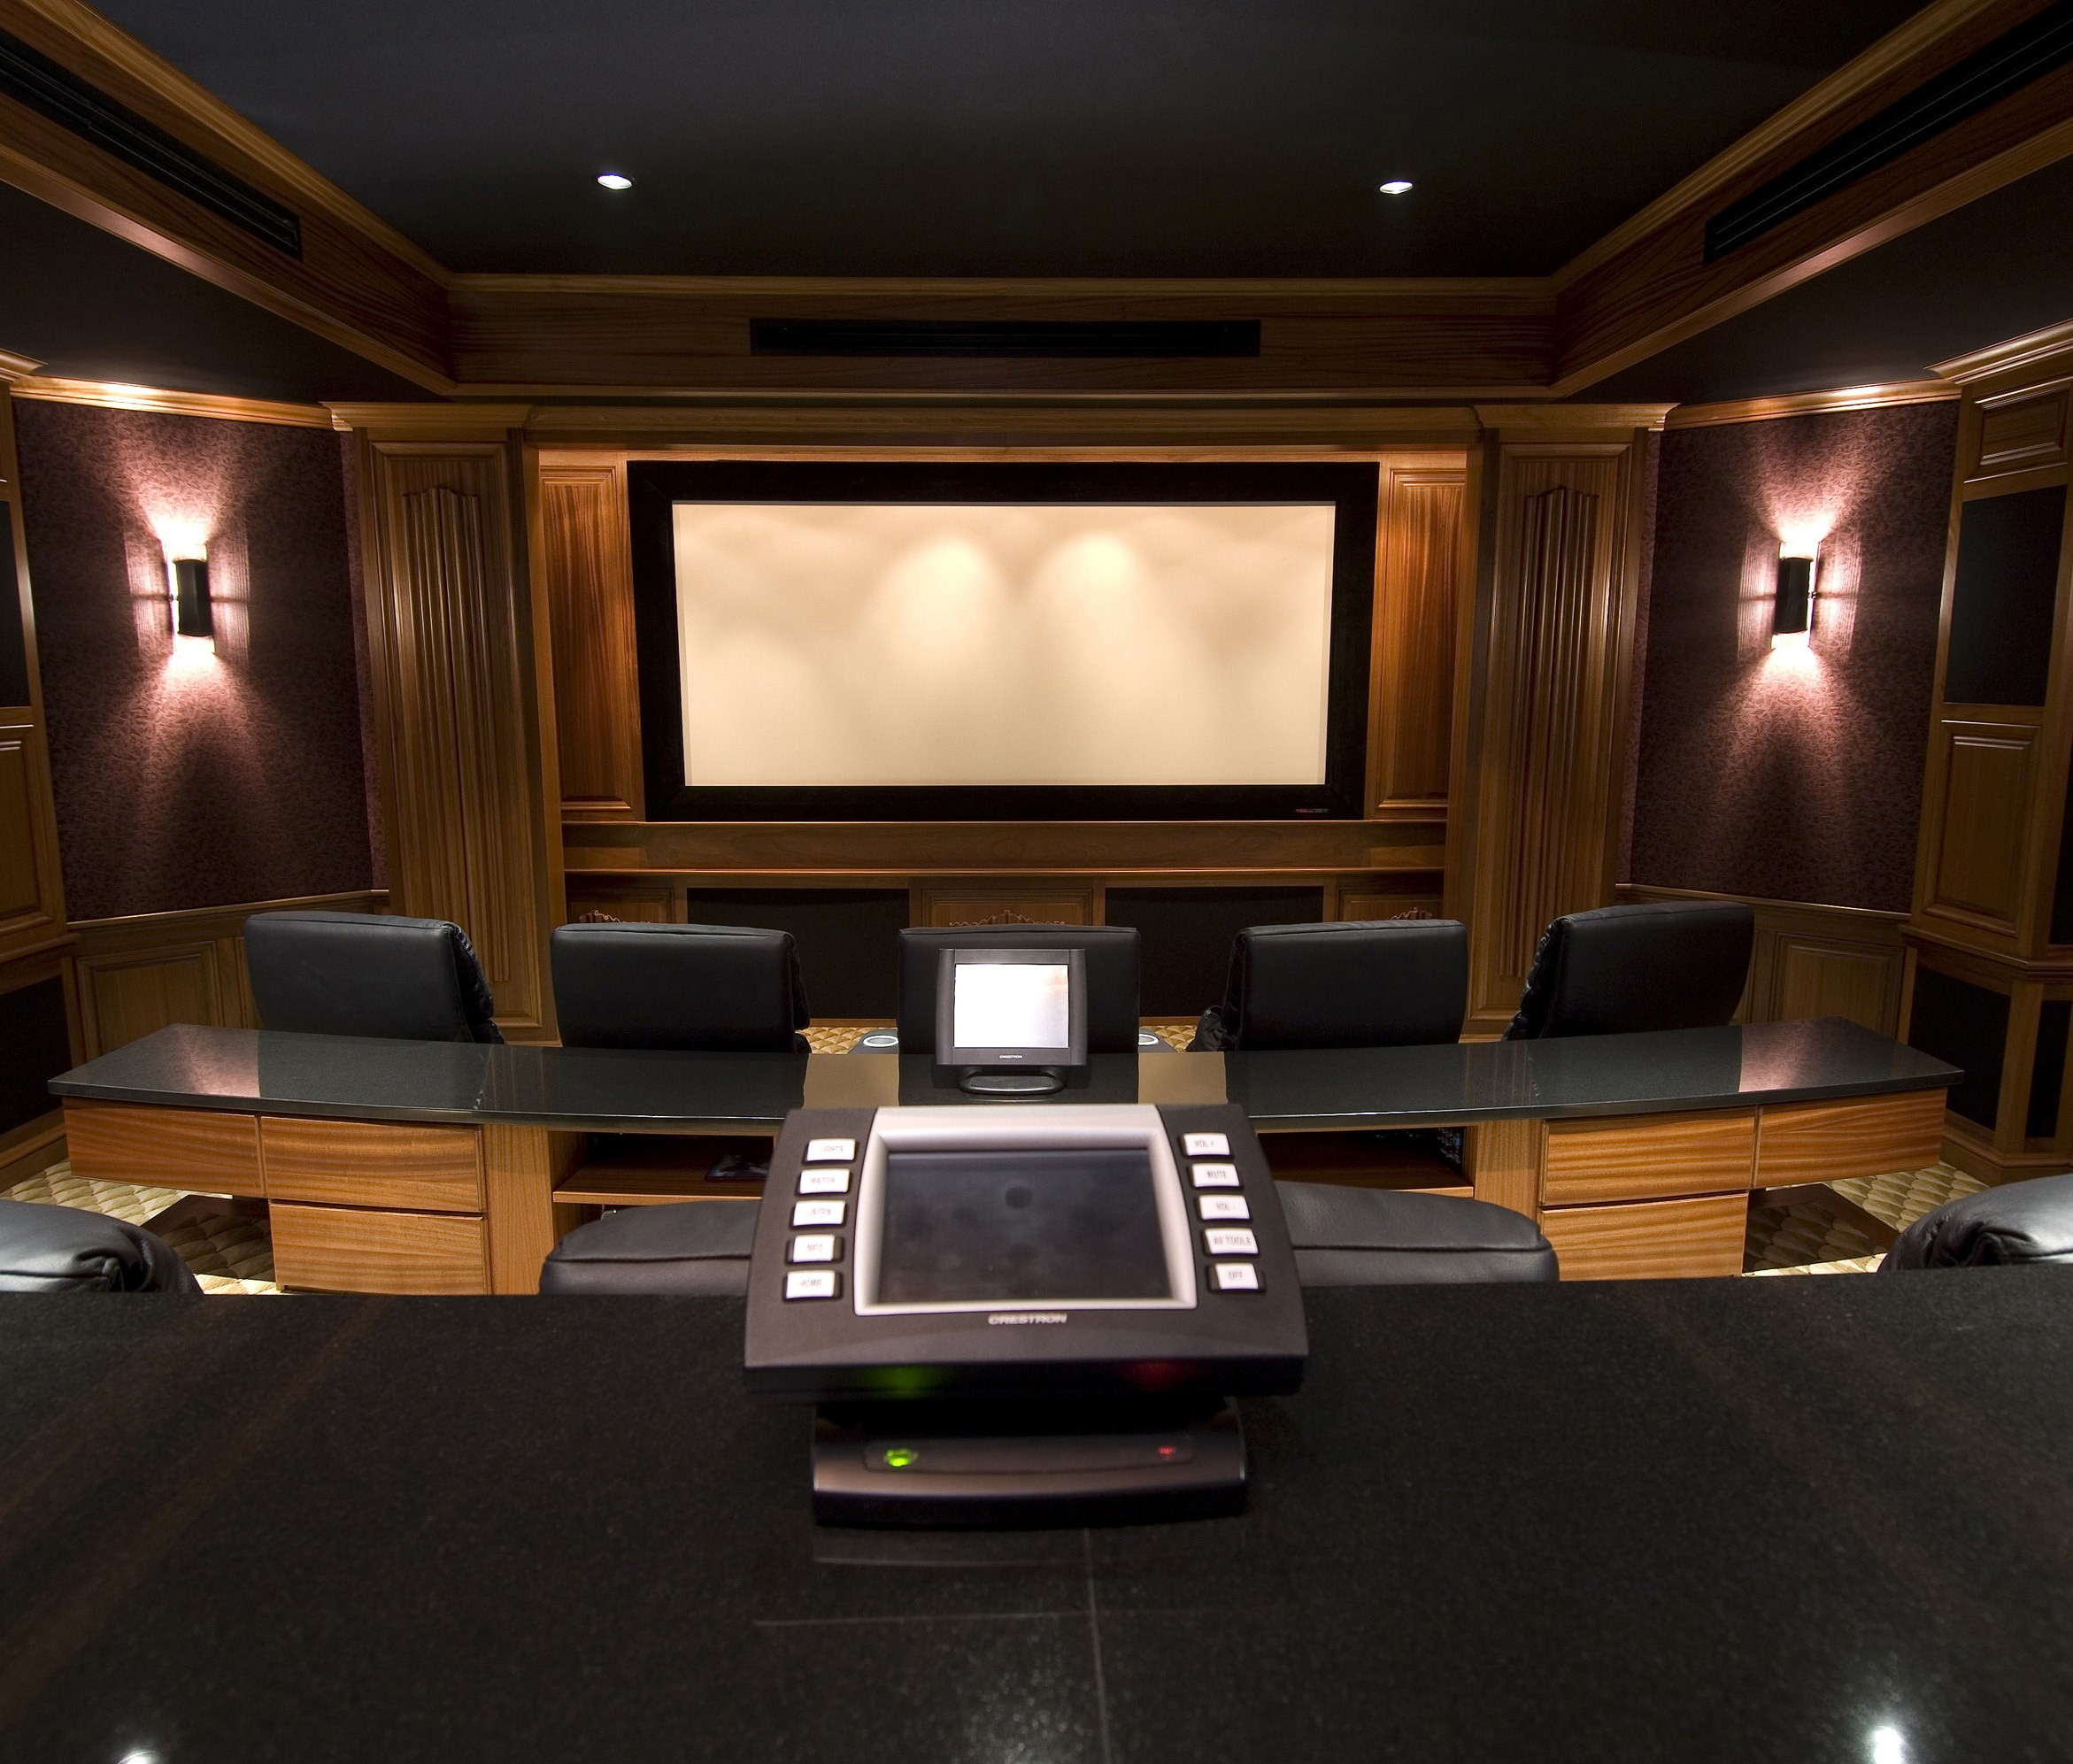 Magnolia Home Theater | Magnolia Hi Fi | Magnolia Credit Card